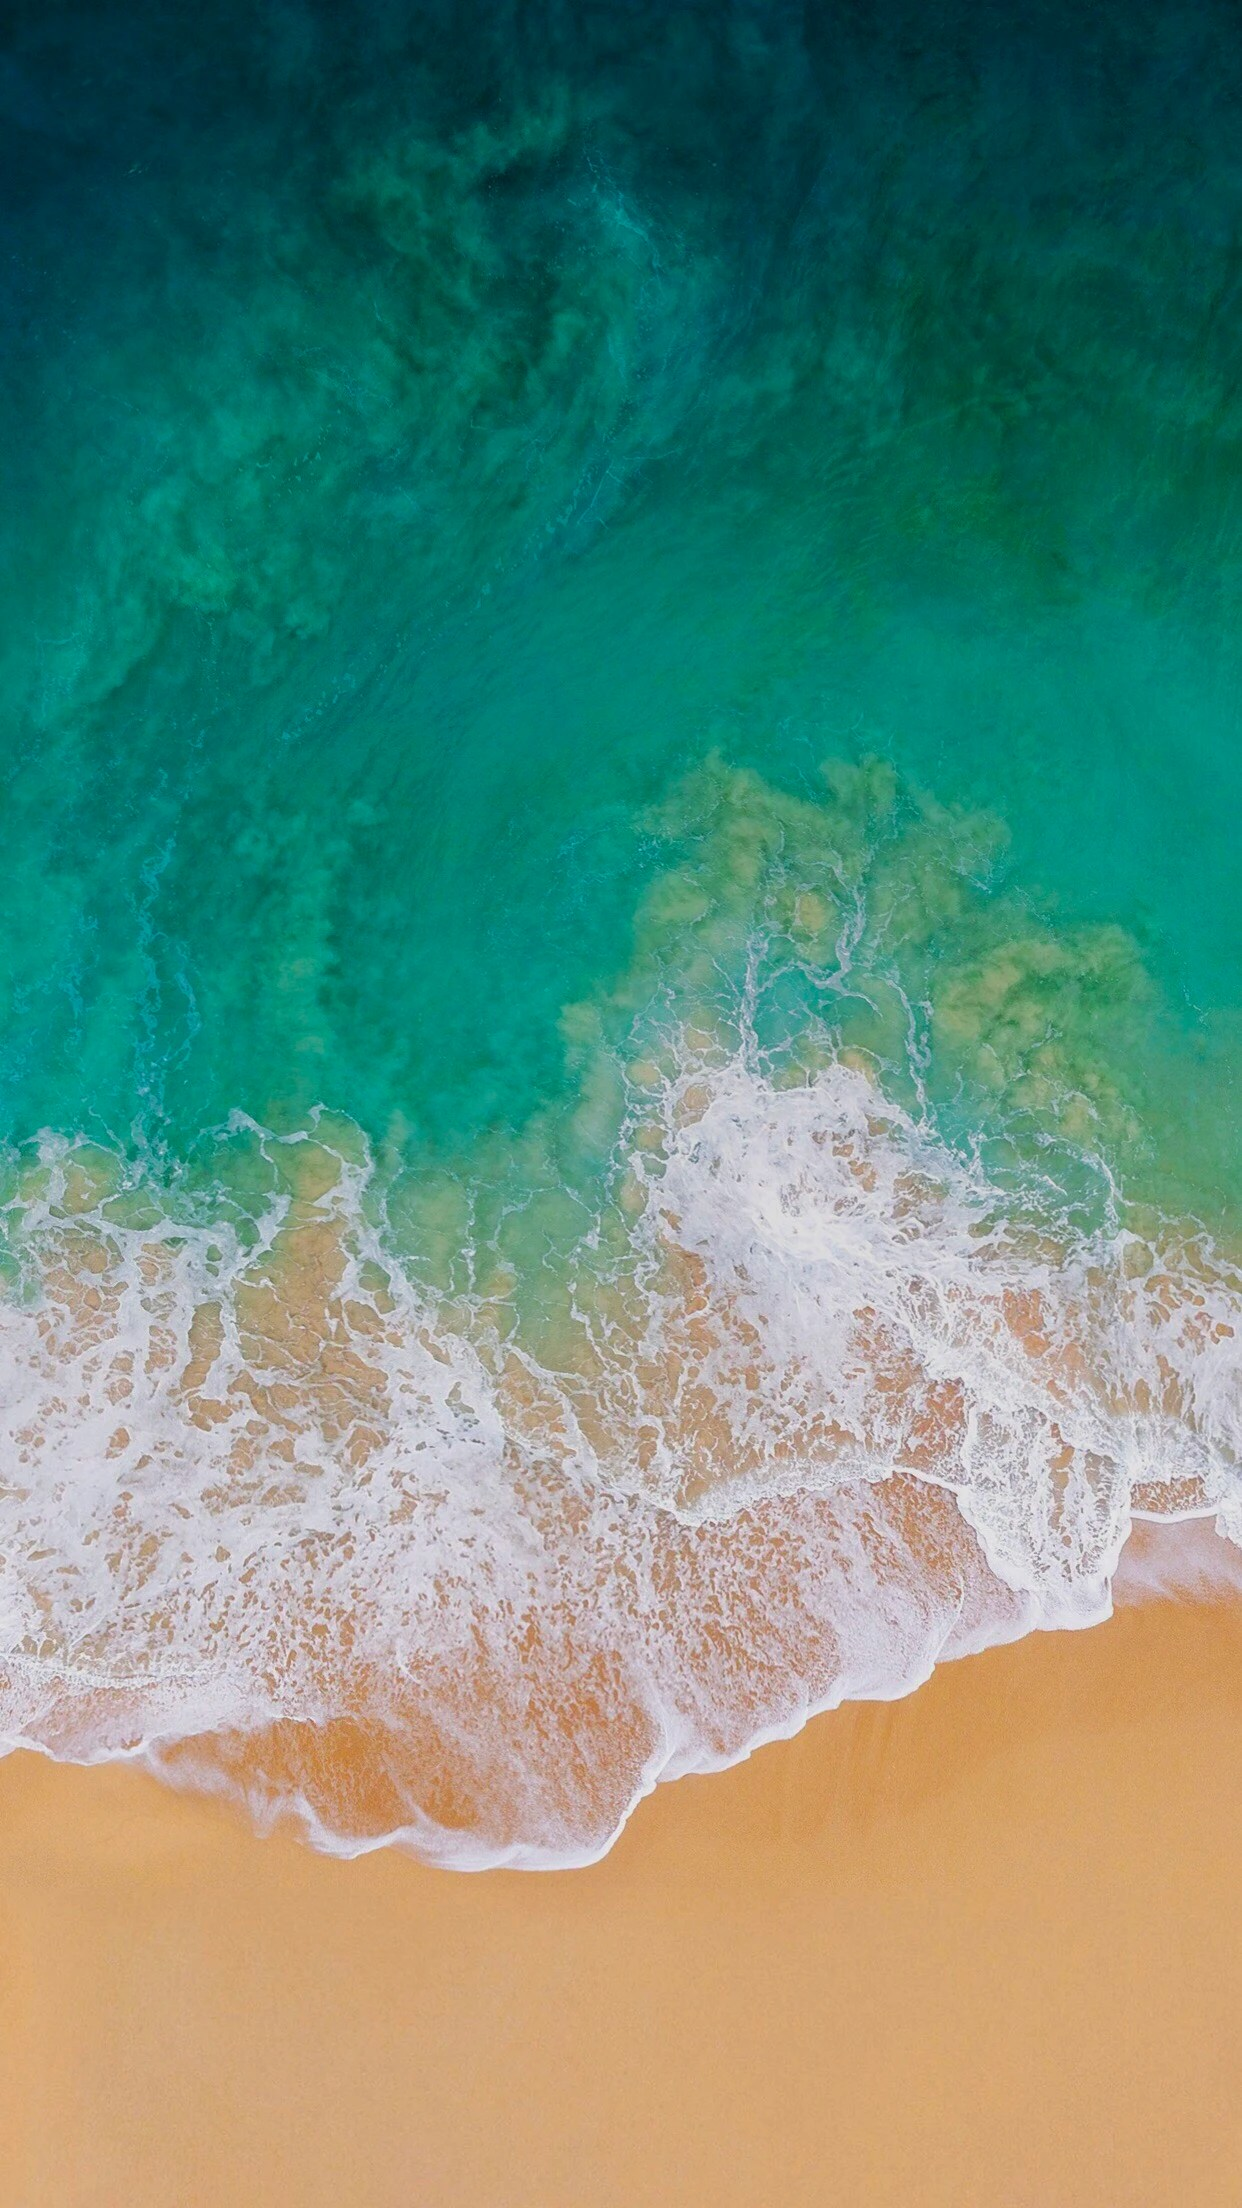 Fall Themed Iphone Wallpapers Download The New Ios 11 Beta Wallpaper Right Here